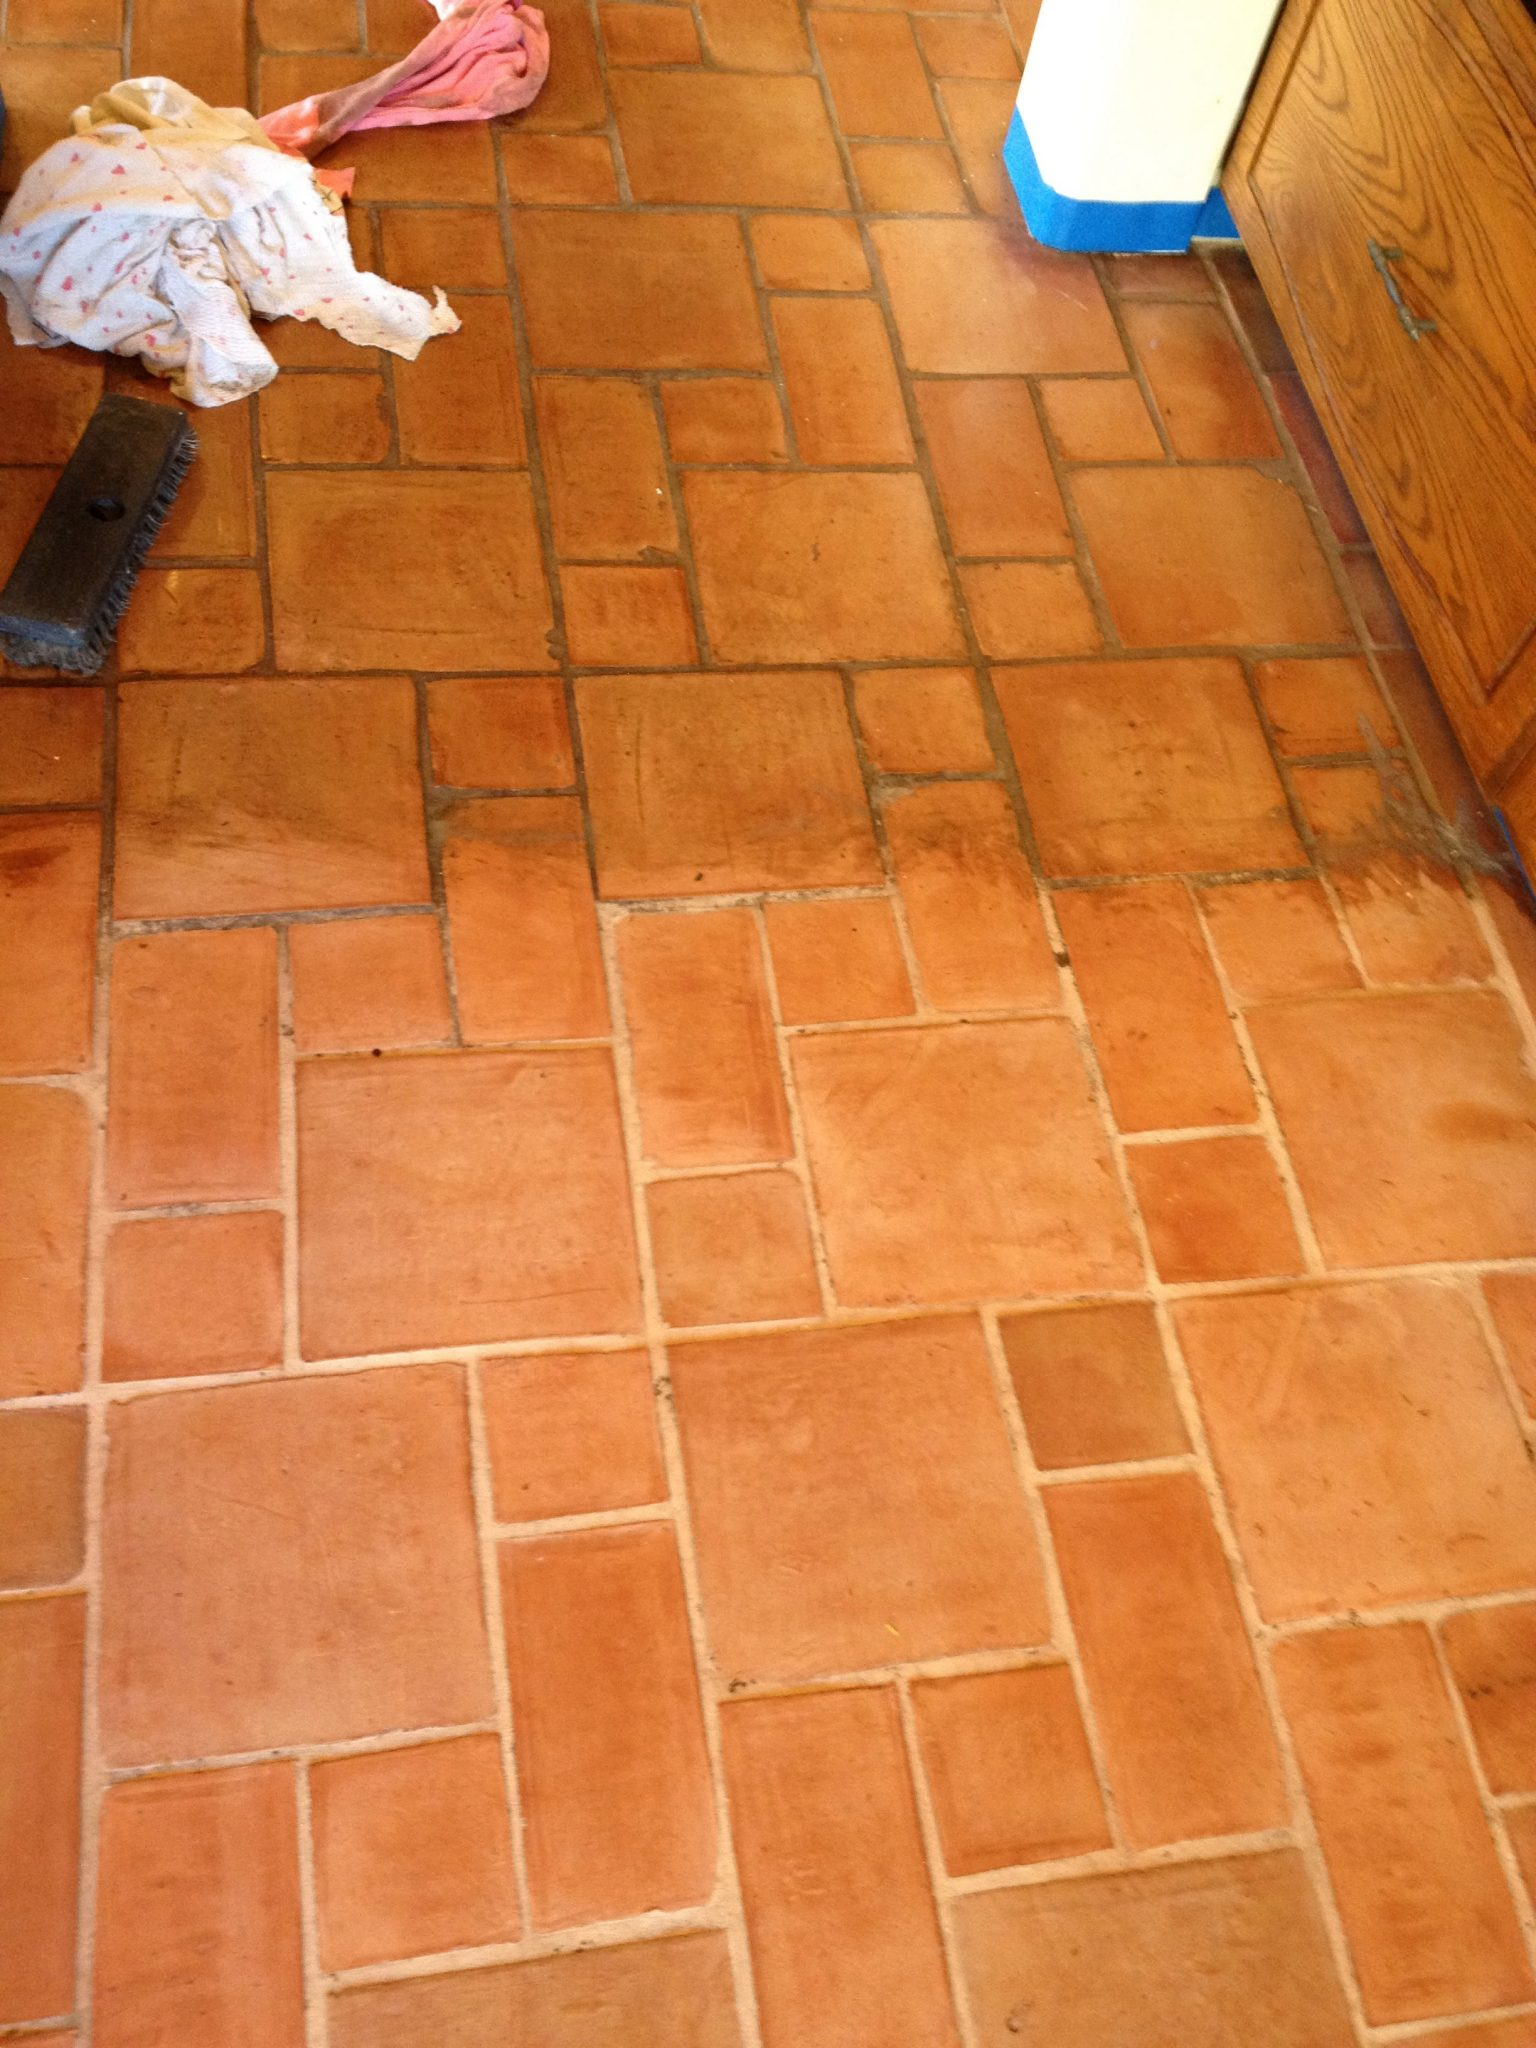 Sealing Travertine Pavers Orlando Fl Brick Paver Sealing